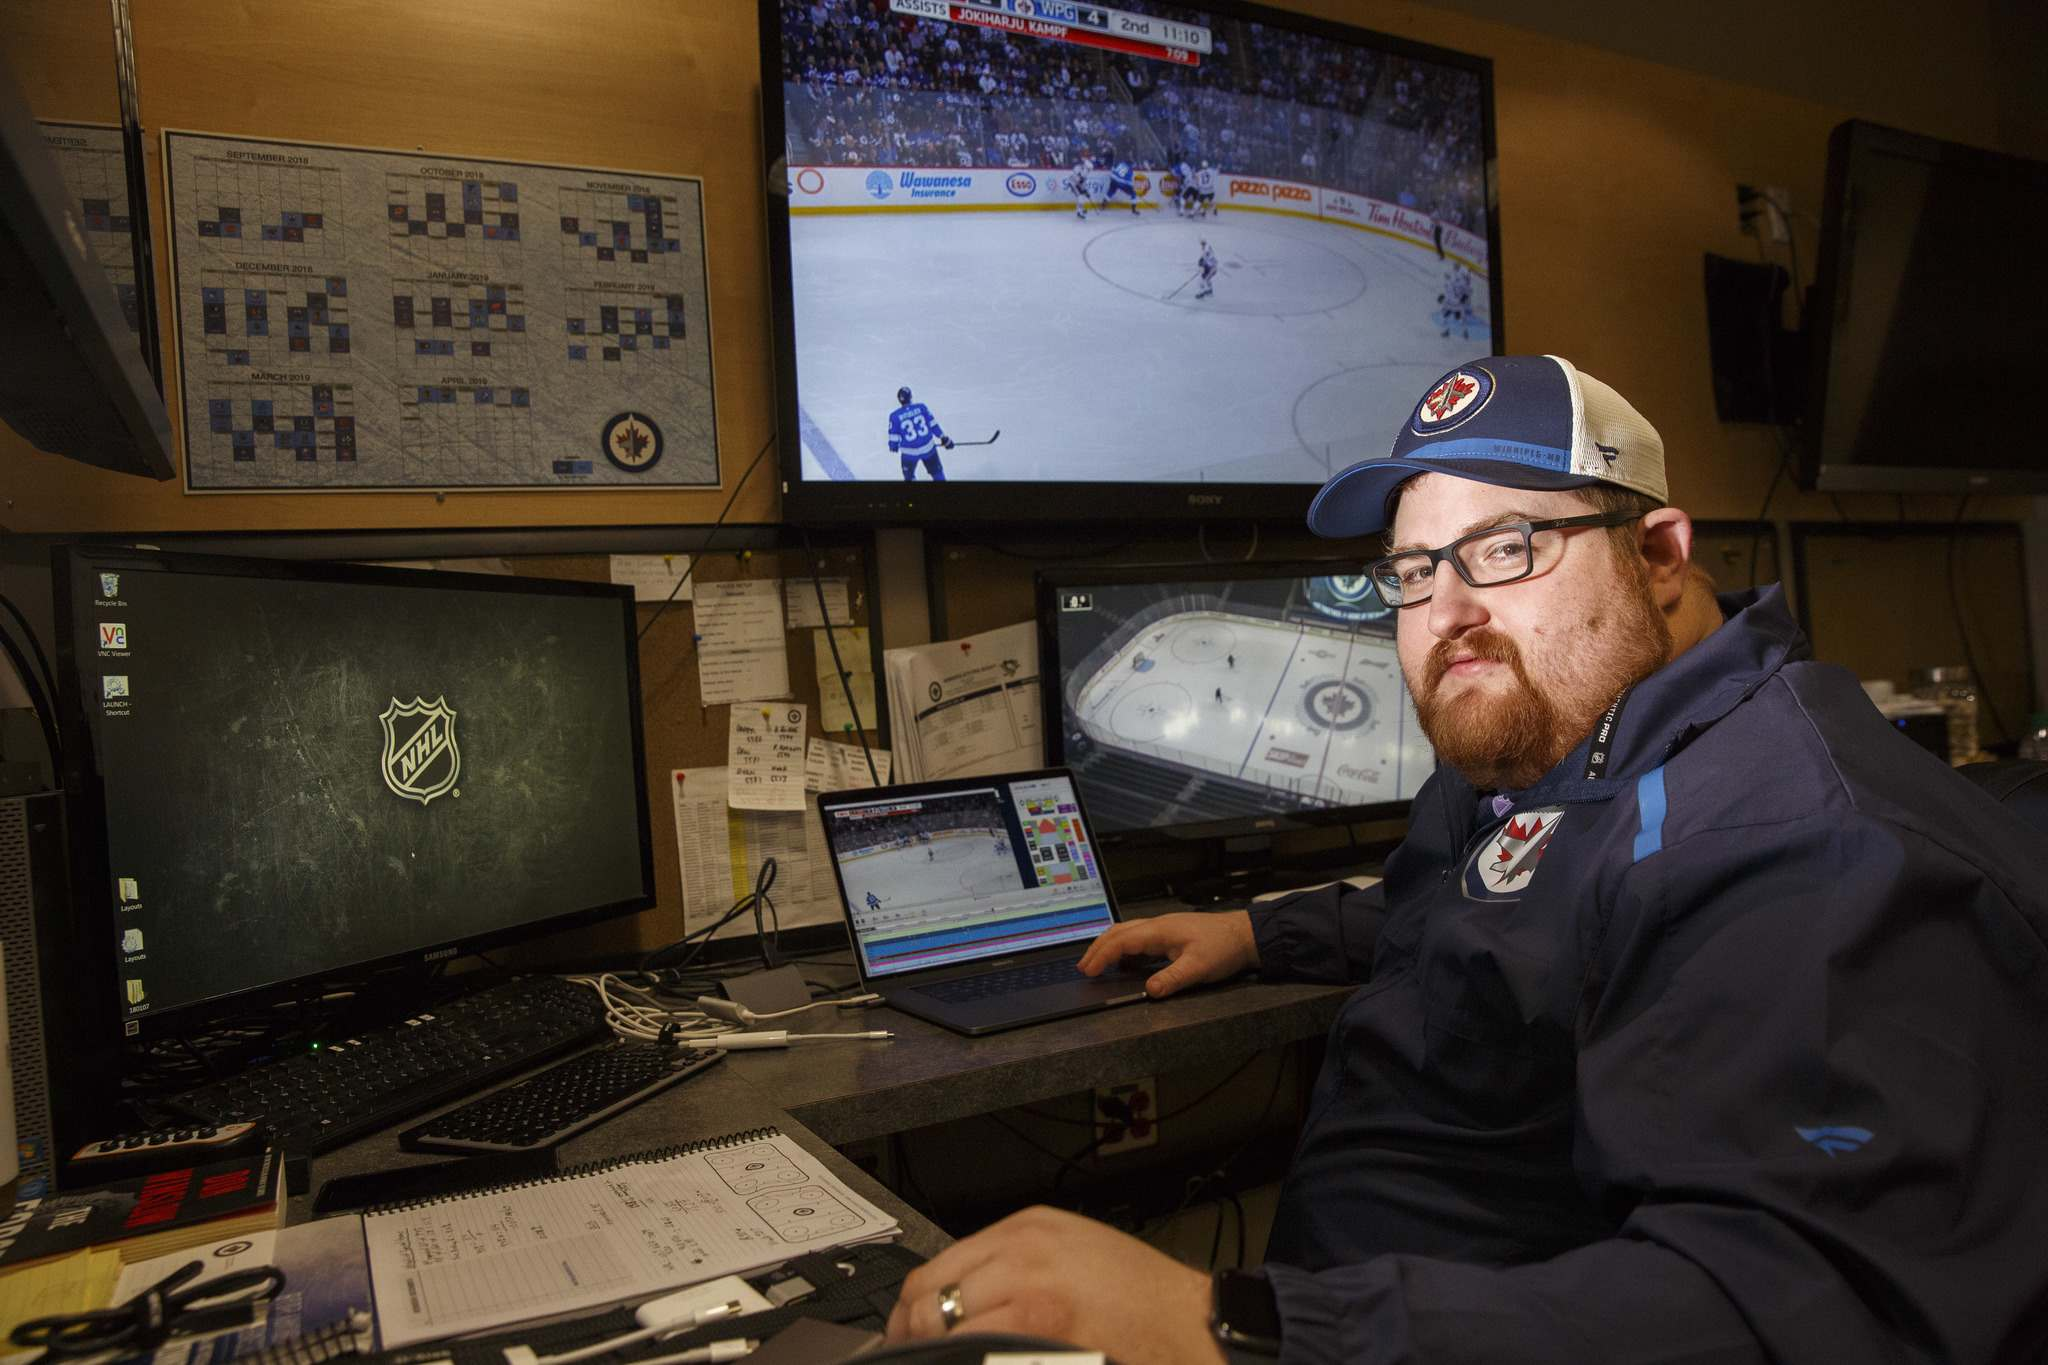 Winnipeg Jets video coach Matt Prefontaine works in his office by the Winnipeg Jets dressing room at Bell MTS Place. (Mike Deal / Winnipeg Free Press)